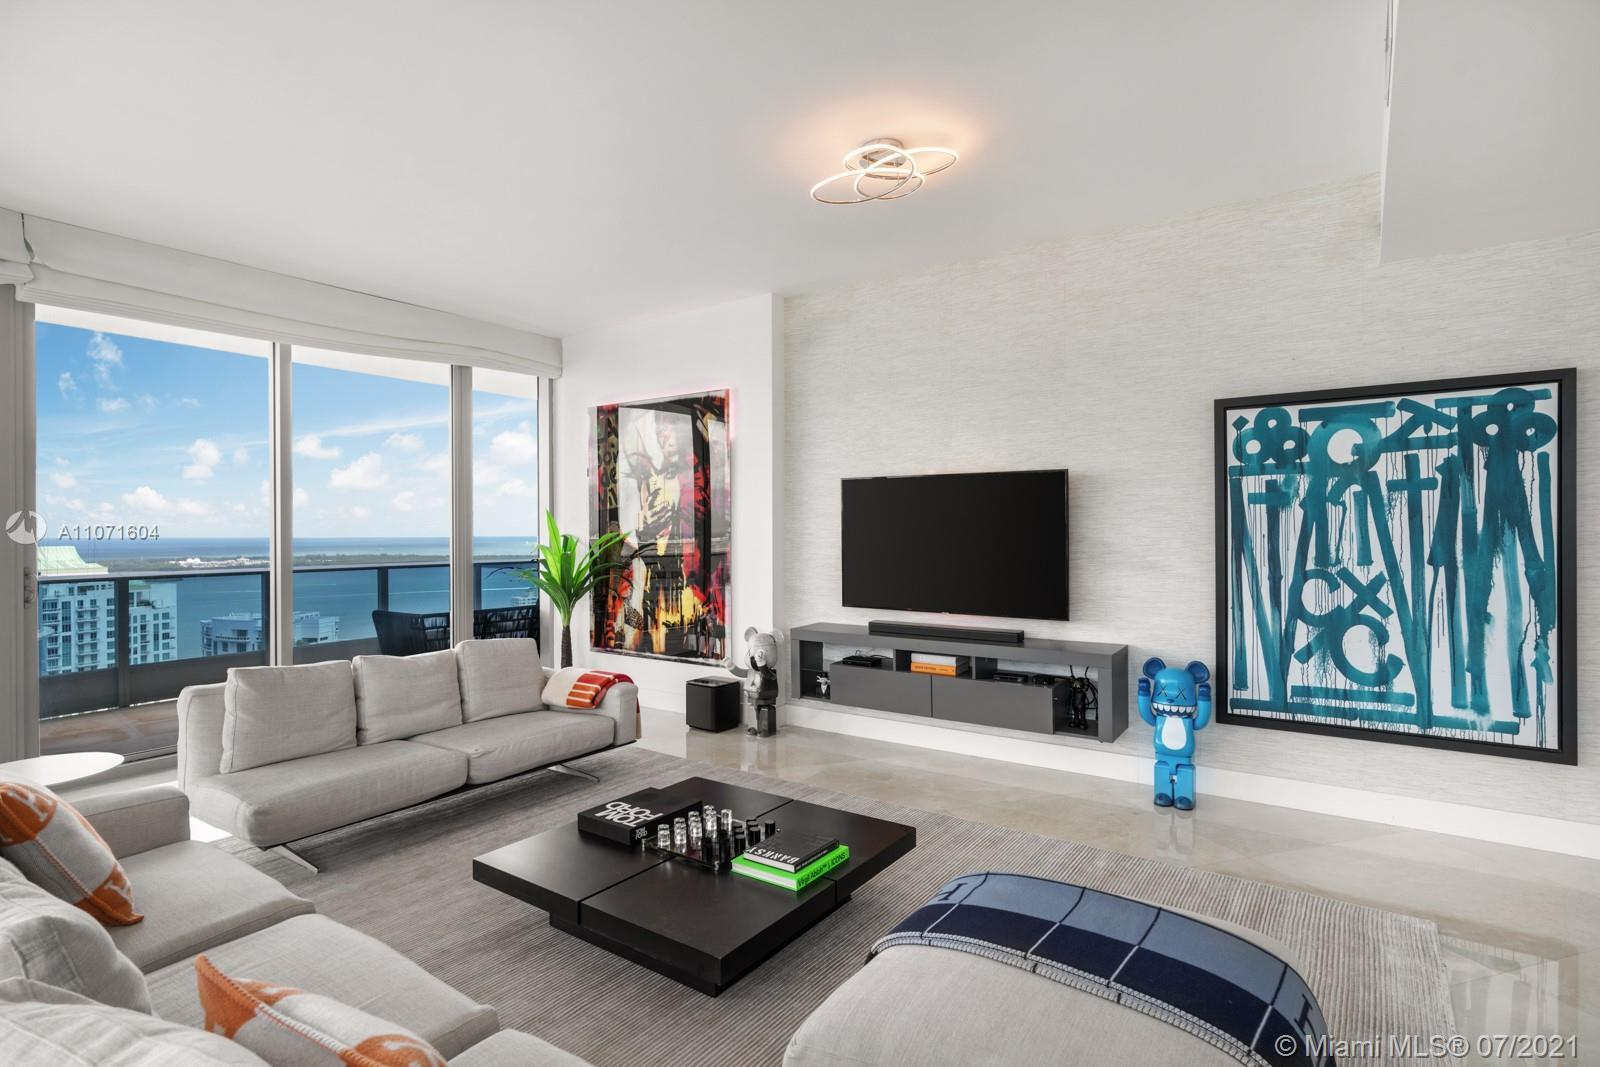 Step Inside With Me! Enter your lower penthouse with sweeping Eastern views of Biscayne Bay and Miam